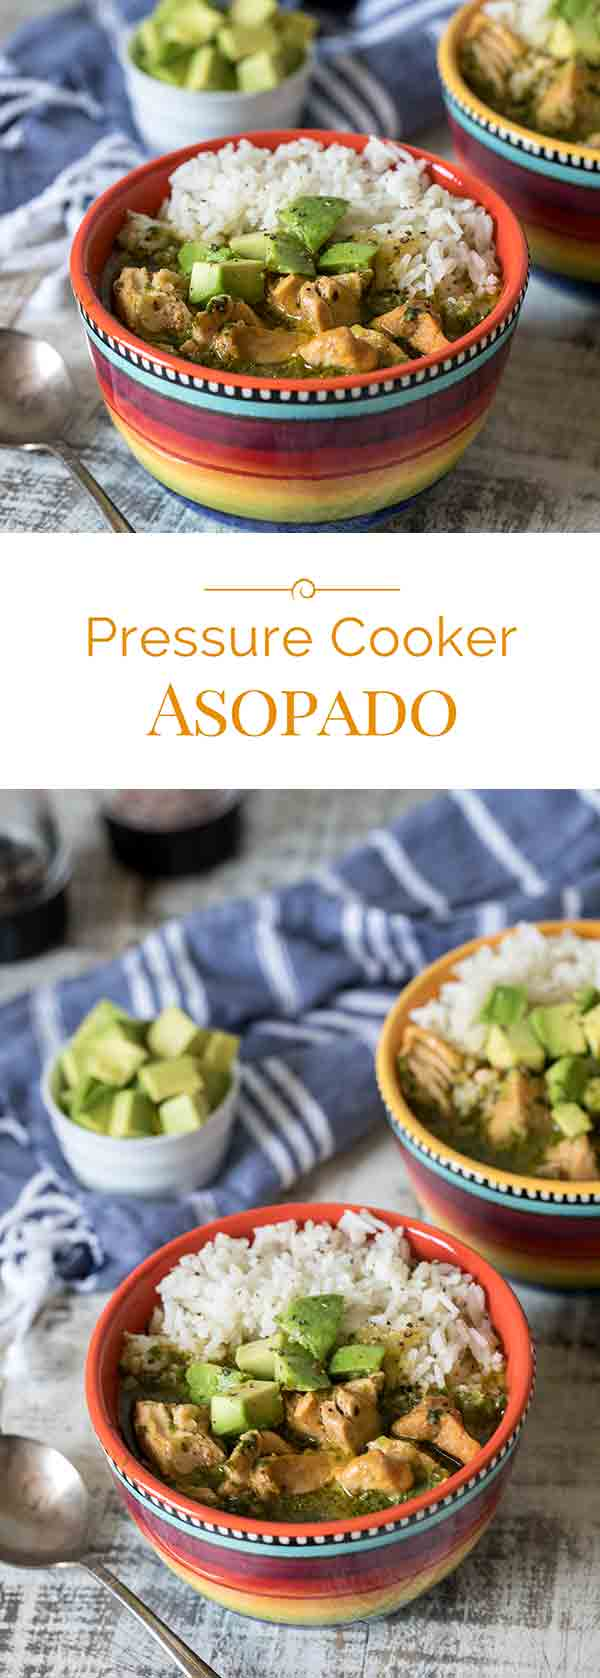 Asopado is a sort of a cross between soup and paella. This Pressure Cooker Asopado is quick and easy to make and has a bright fresh flavor.